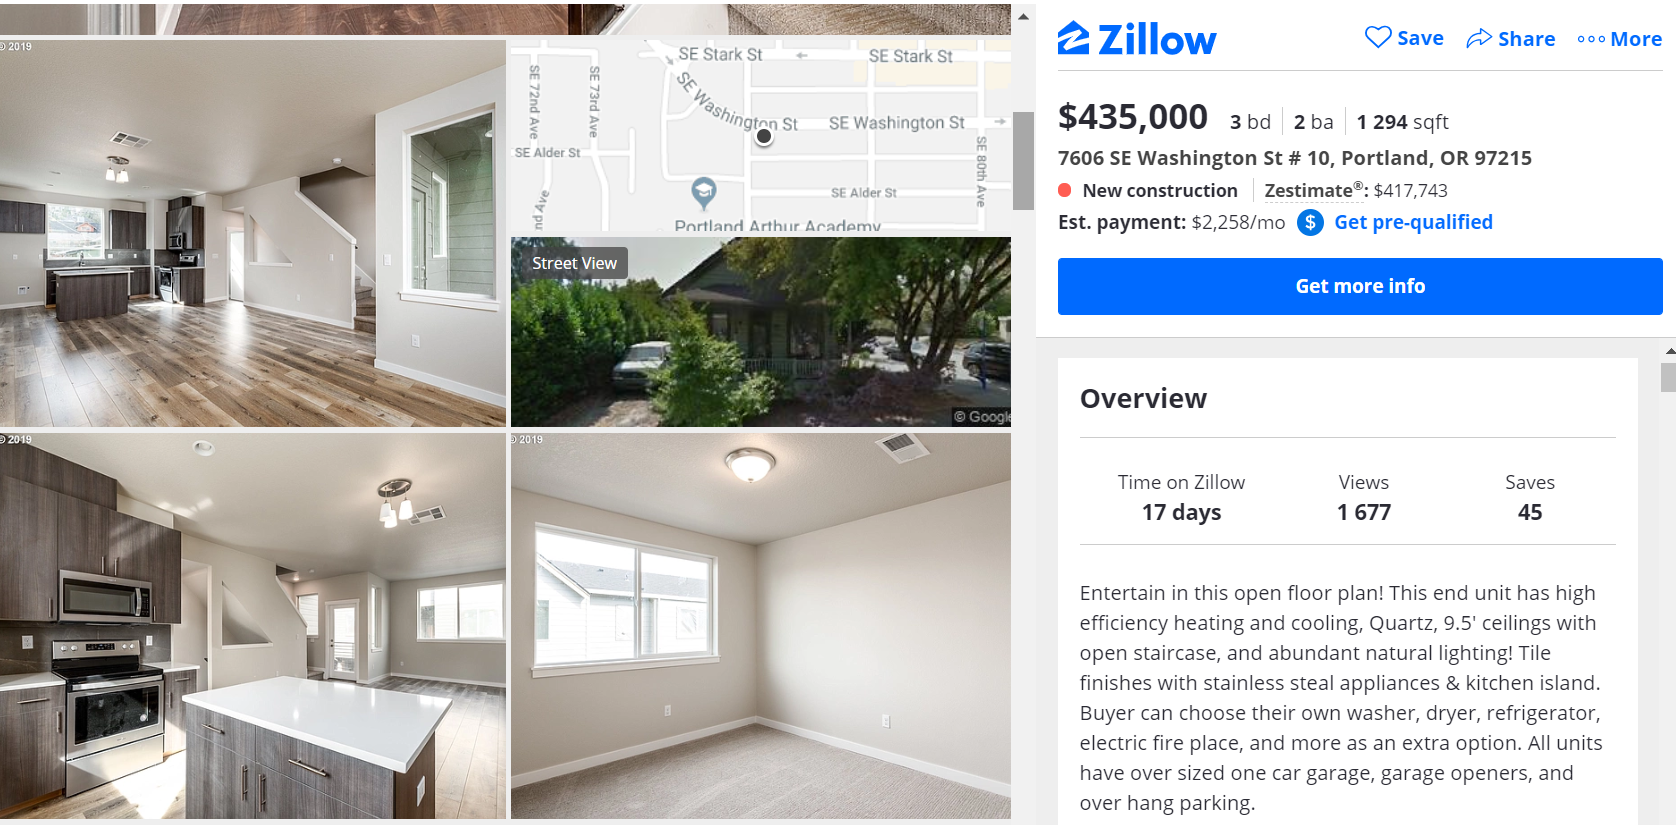 How to Build Real Estate Website Zillow